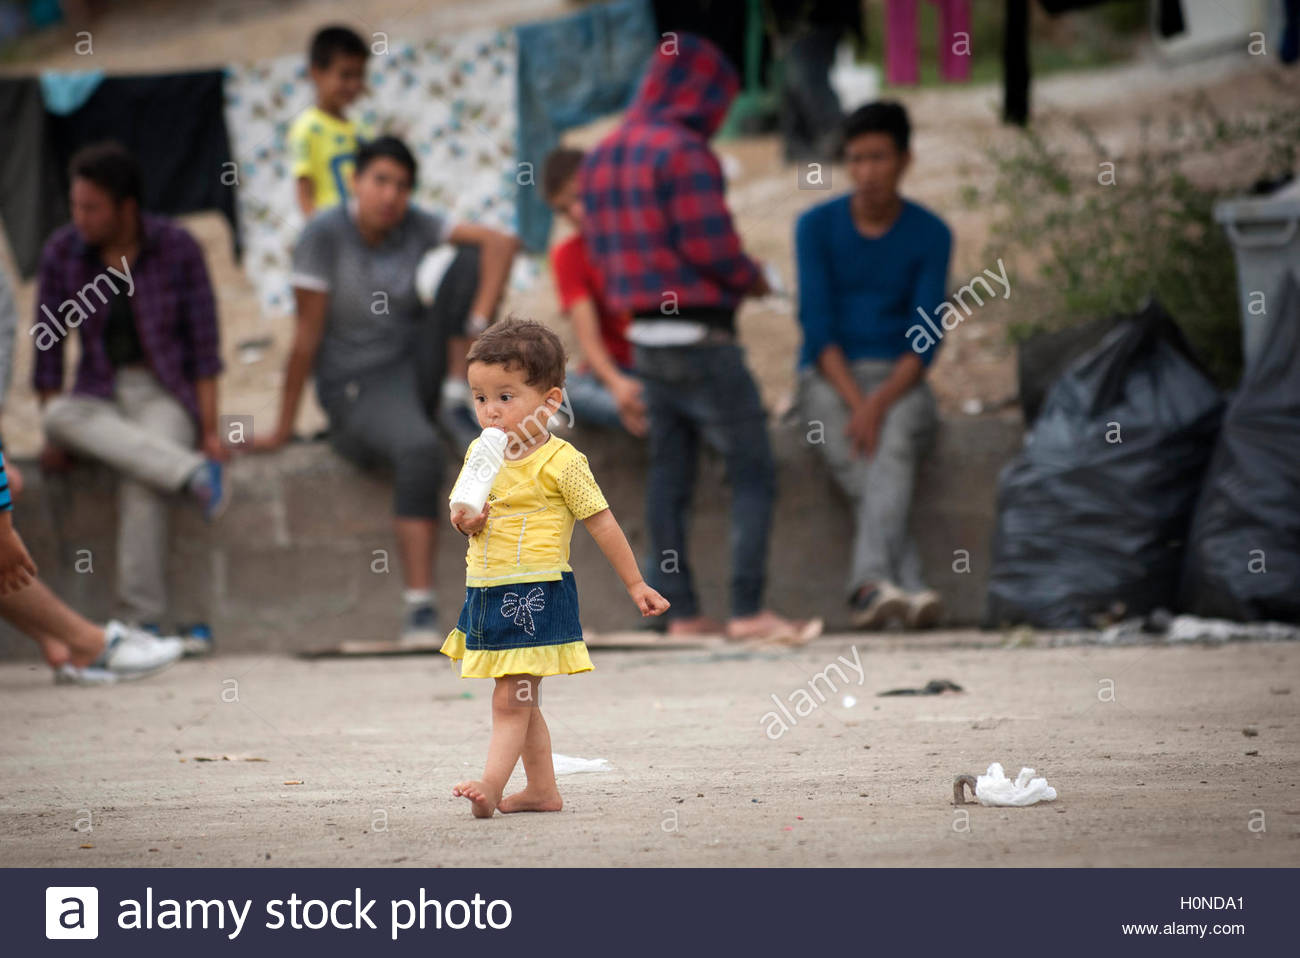 A child at Moria Refugee Camp in Lesbos, Greece. - Stock Image